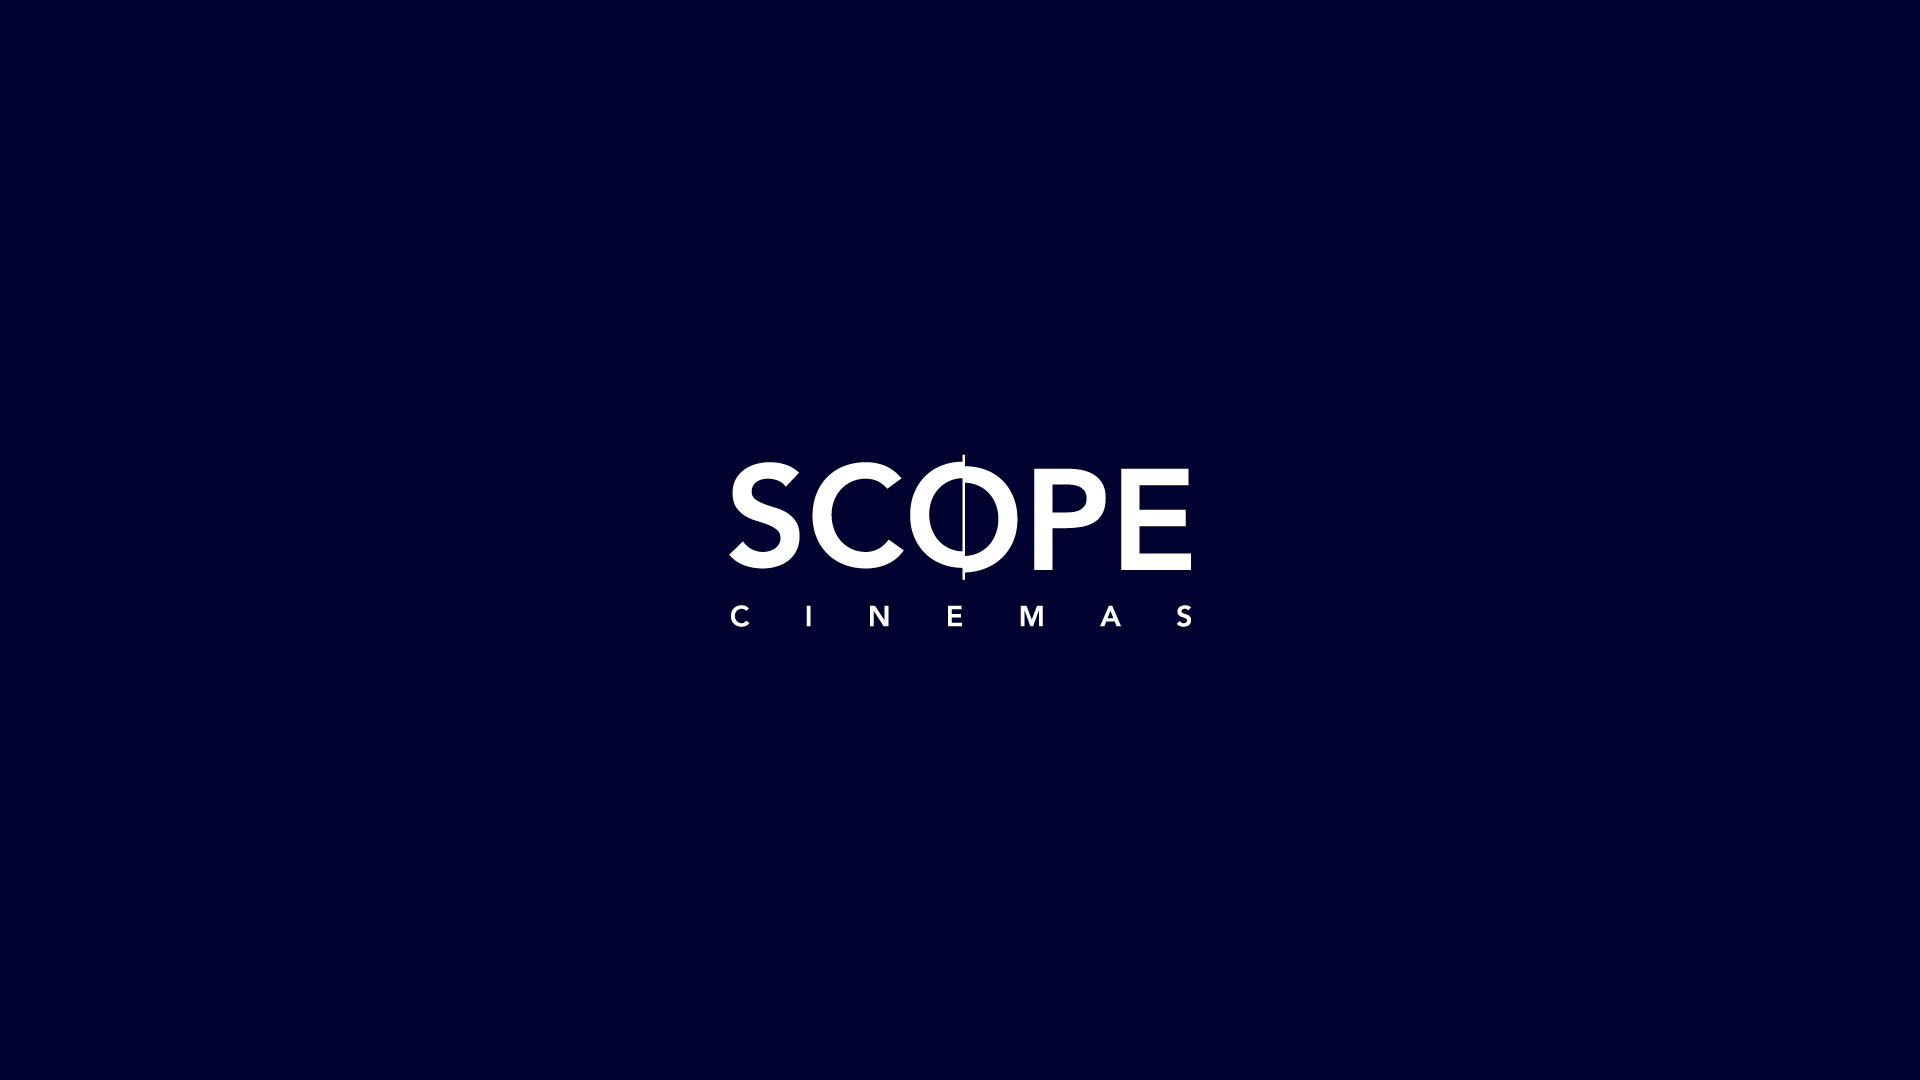 ScopeCinemas Logo